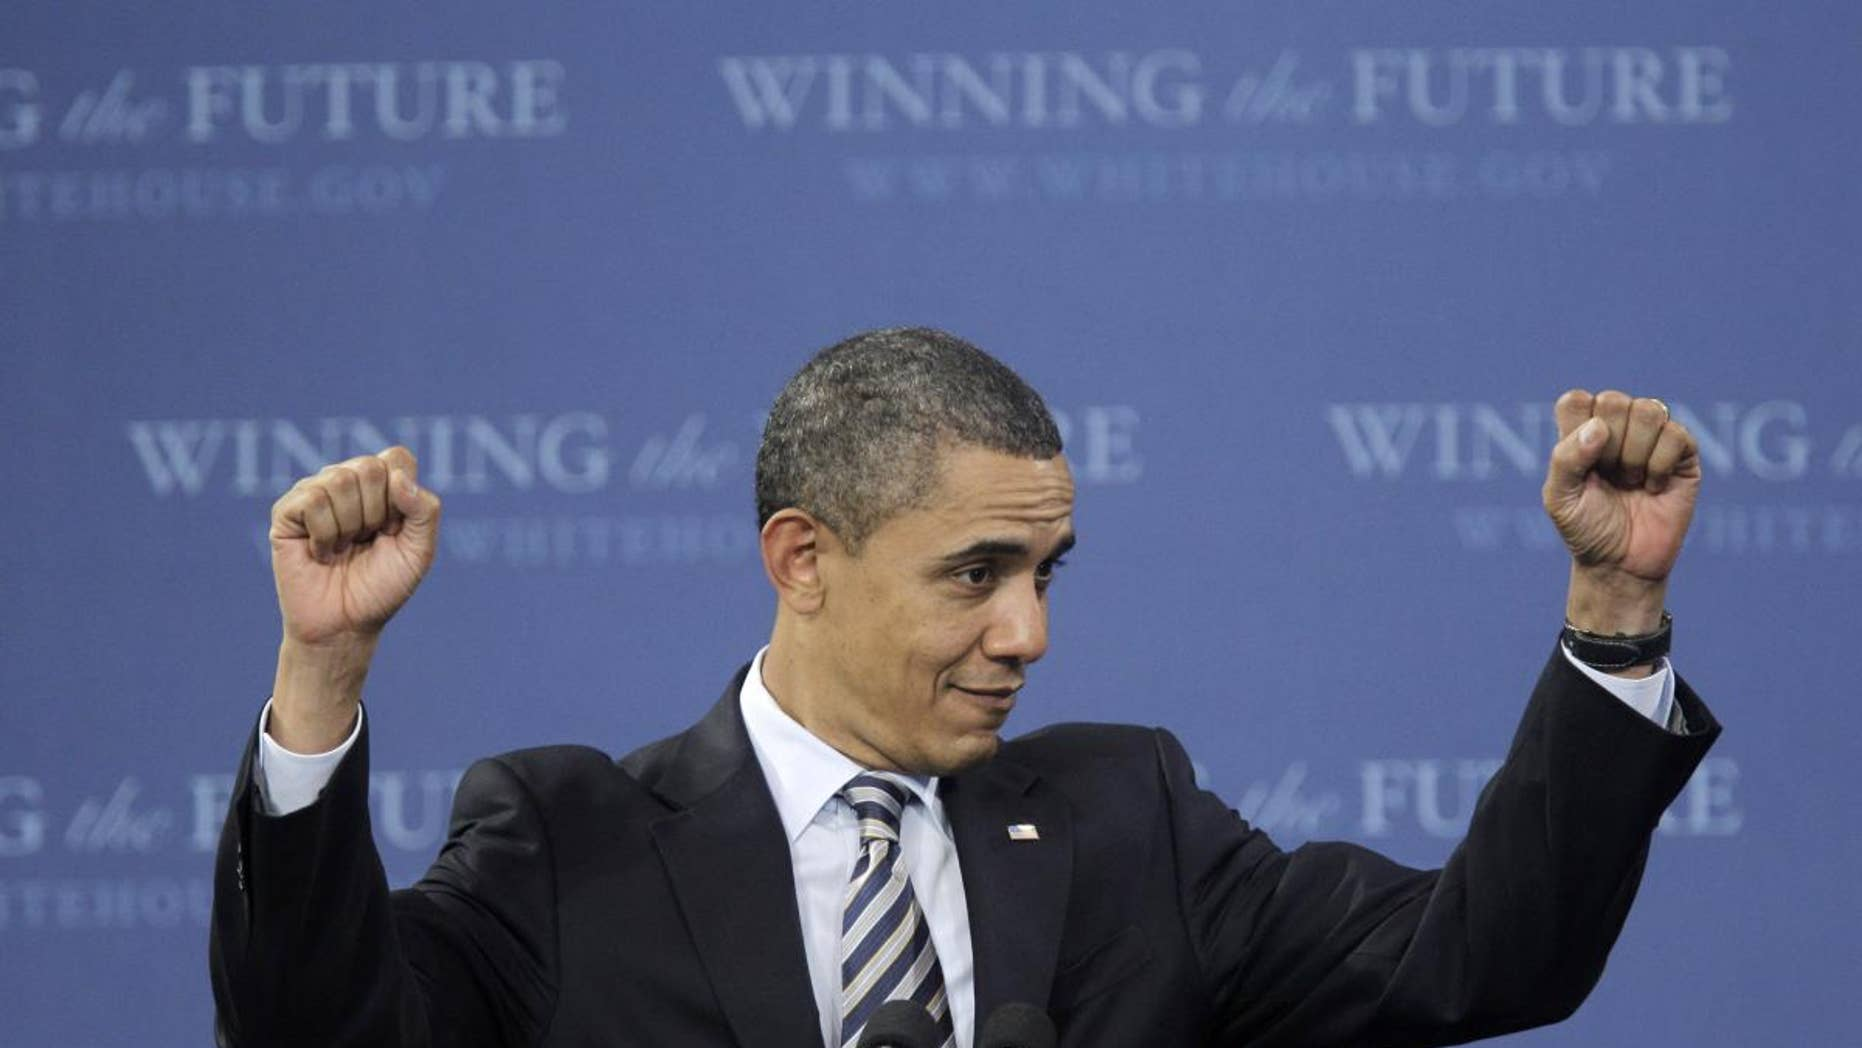 President Barack Obama gestures during his speech at Northern Michigan University in Marquette, Mich., Thursday, Feb. 10, 2011. (AP Photo/Carlos Osorio)